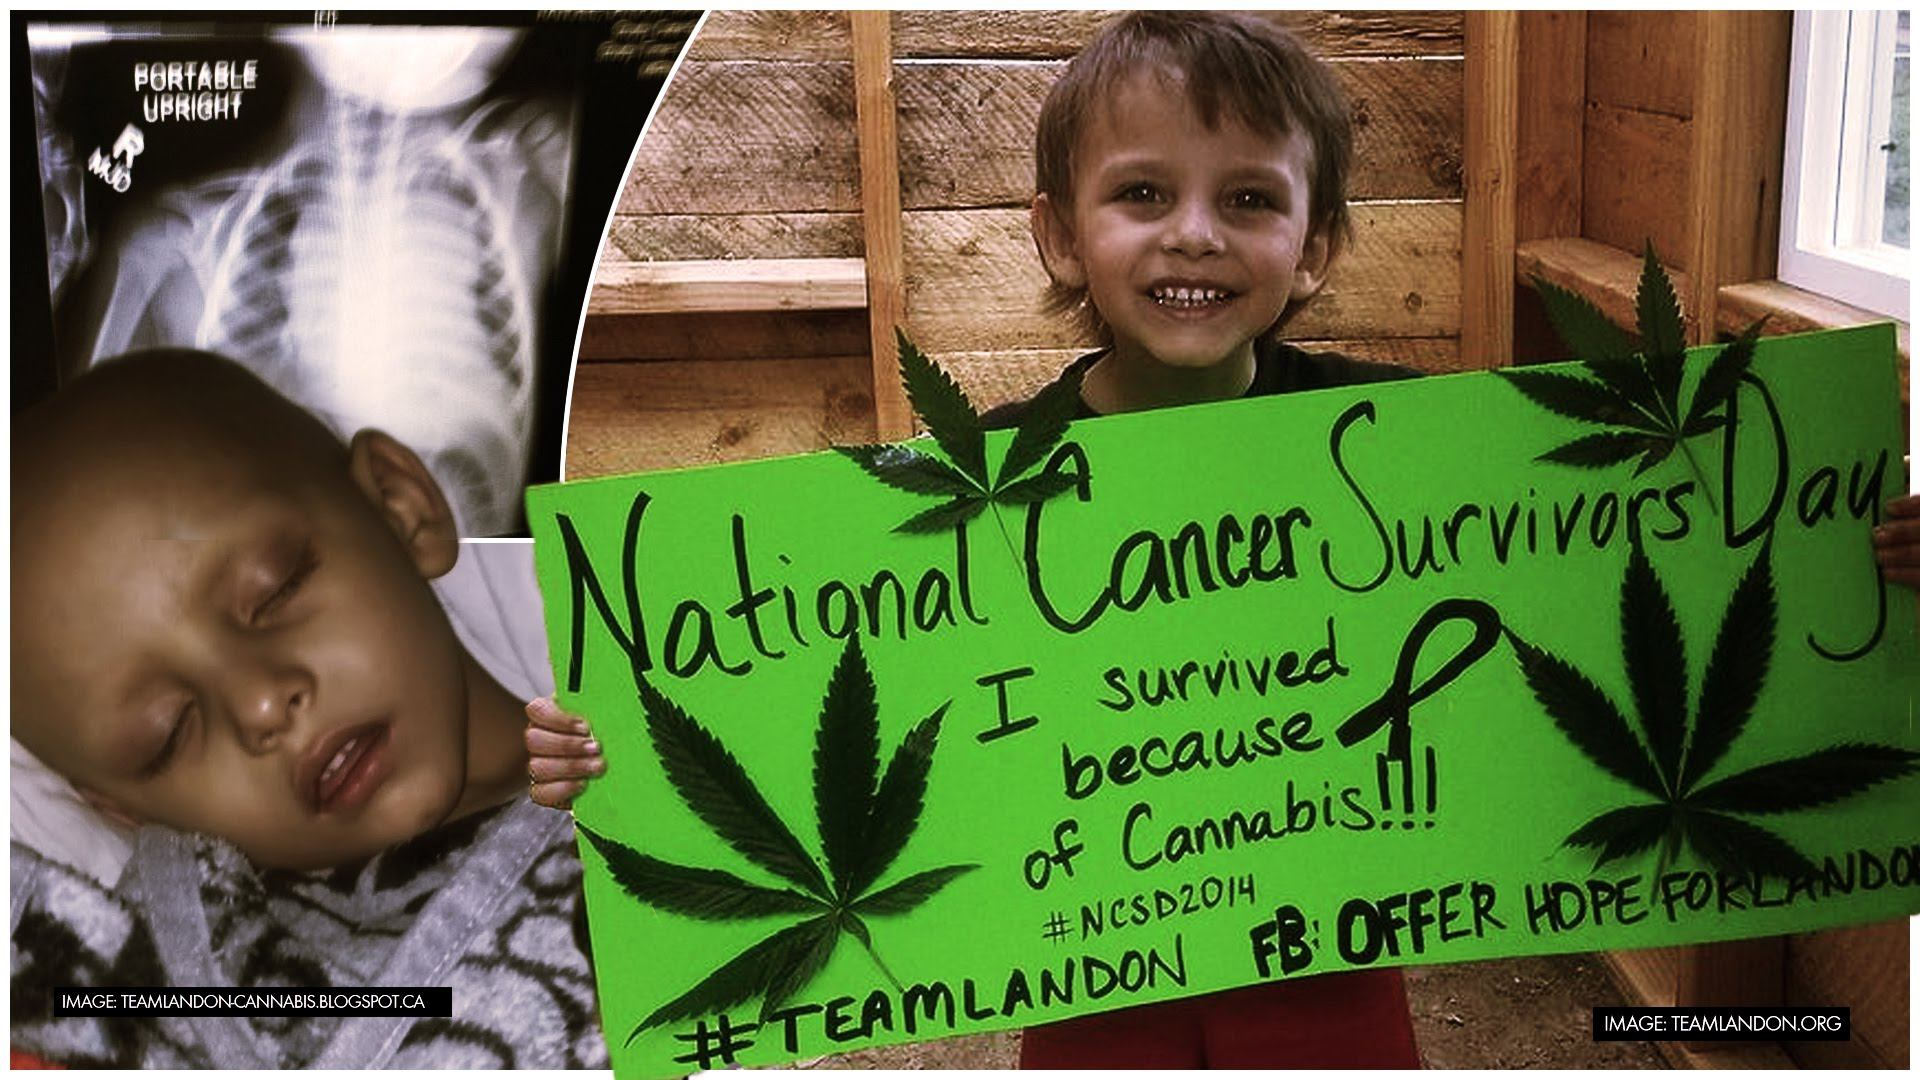 Mainstream Medicine Admits Medical Cannabis is Effective in Treating Leukemia – But Only Synthetic Patented Version